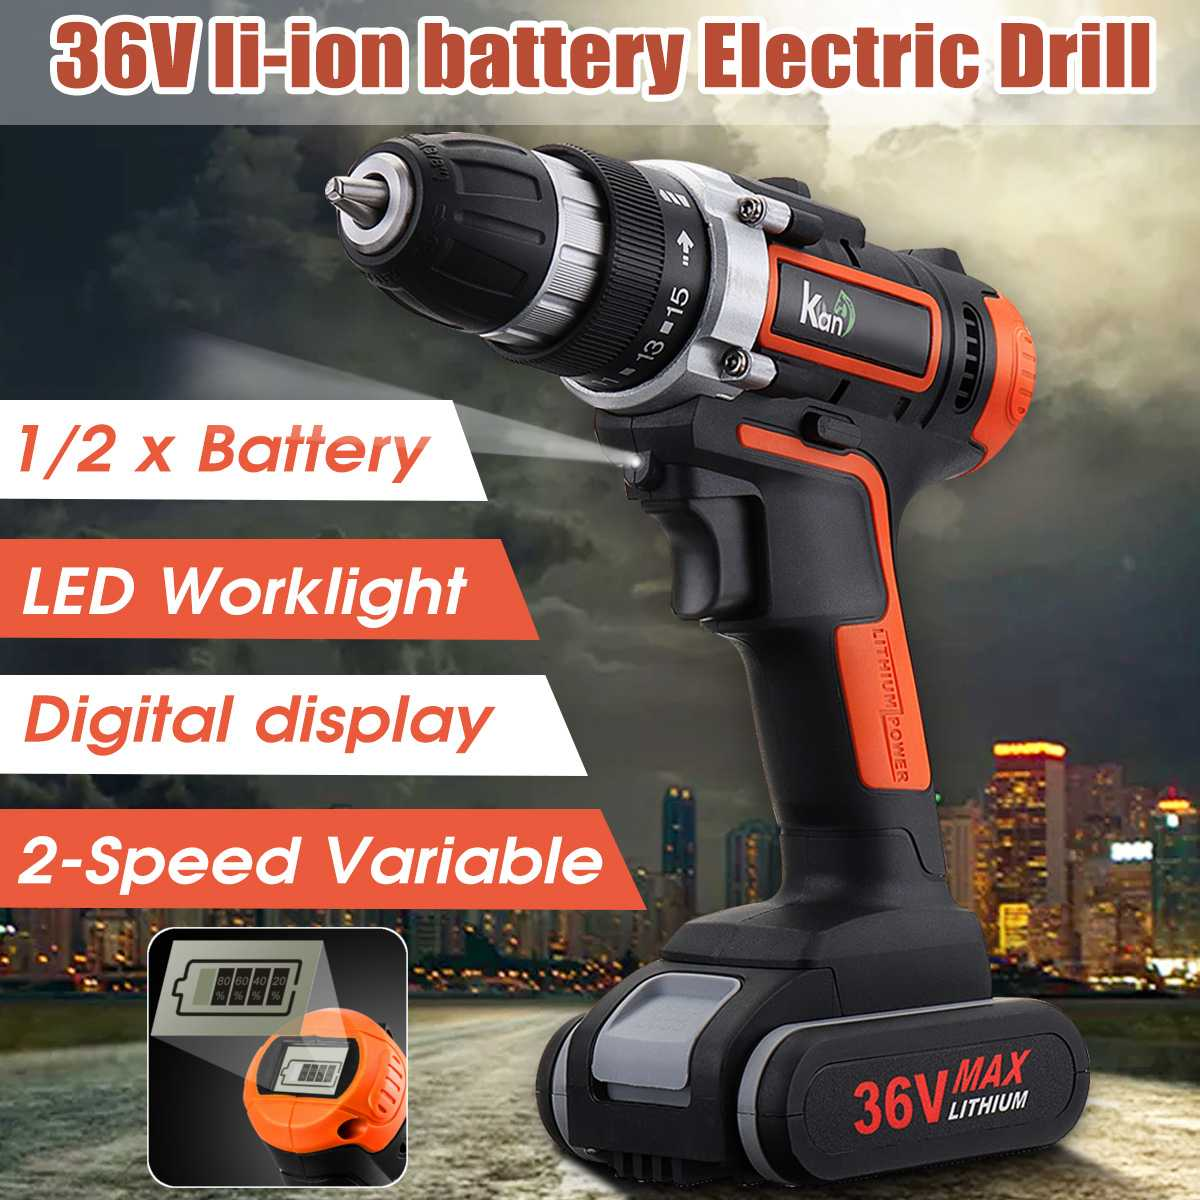 36V LED Light Cordless Electric Drill Double Speed, Digital Display, with 1/2 Lithium Battery Household Woodwooking Power Drills